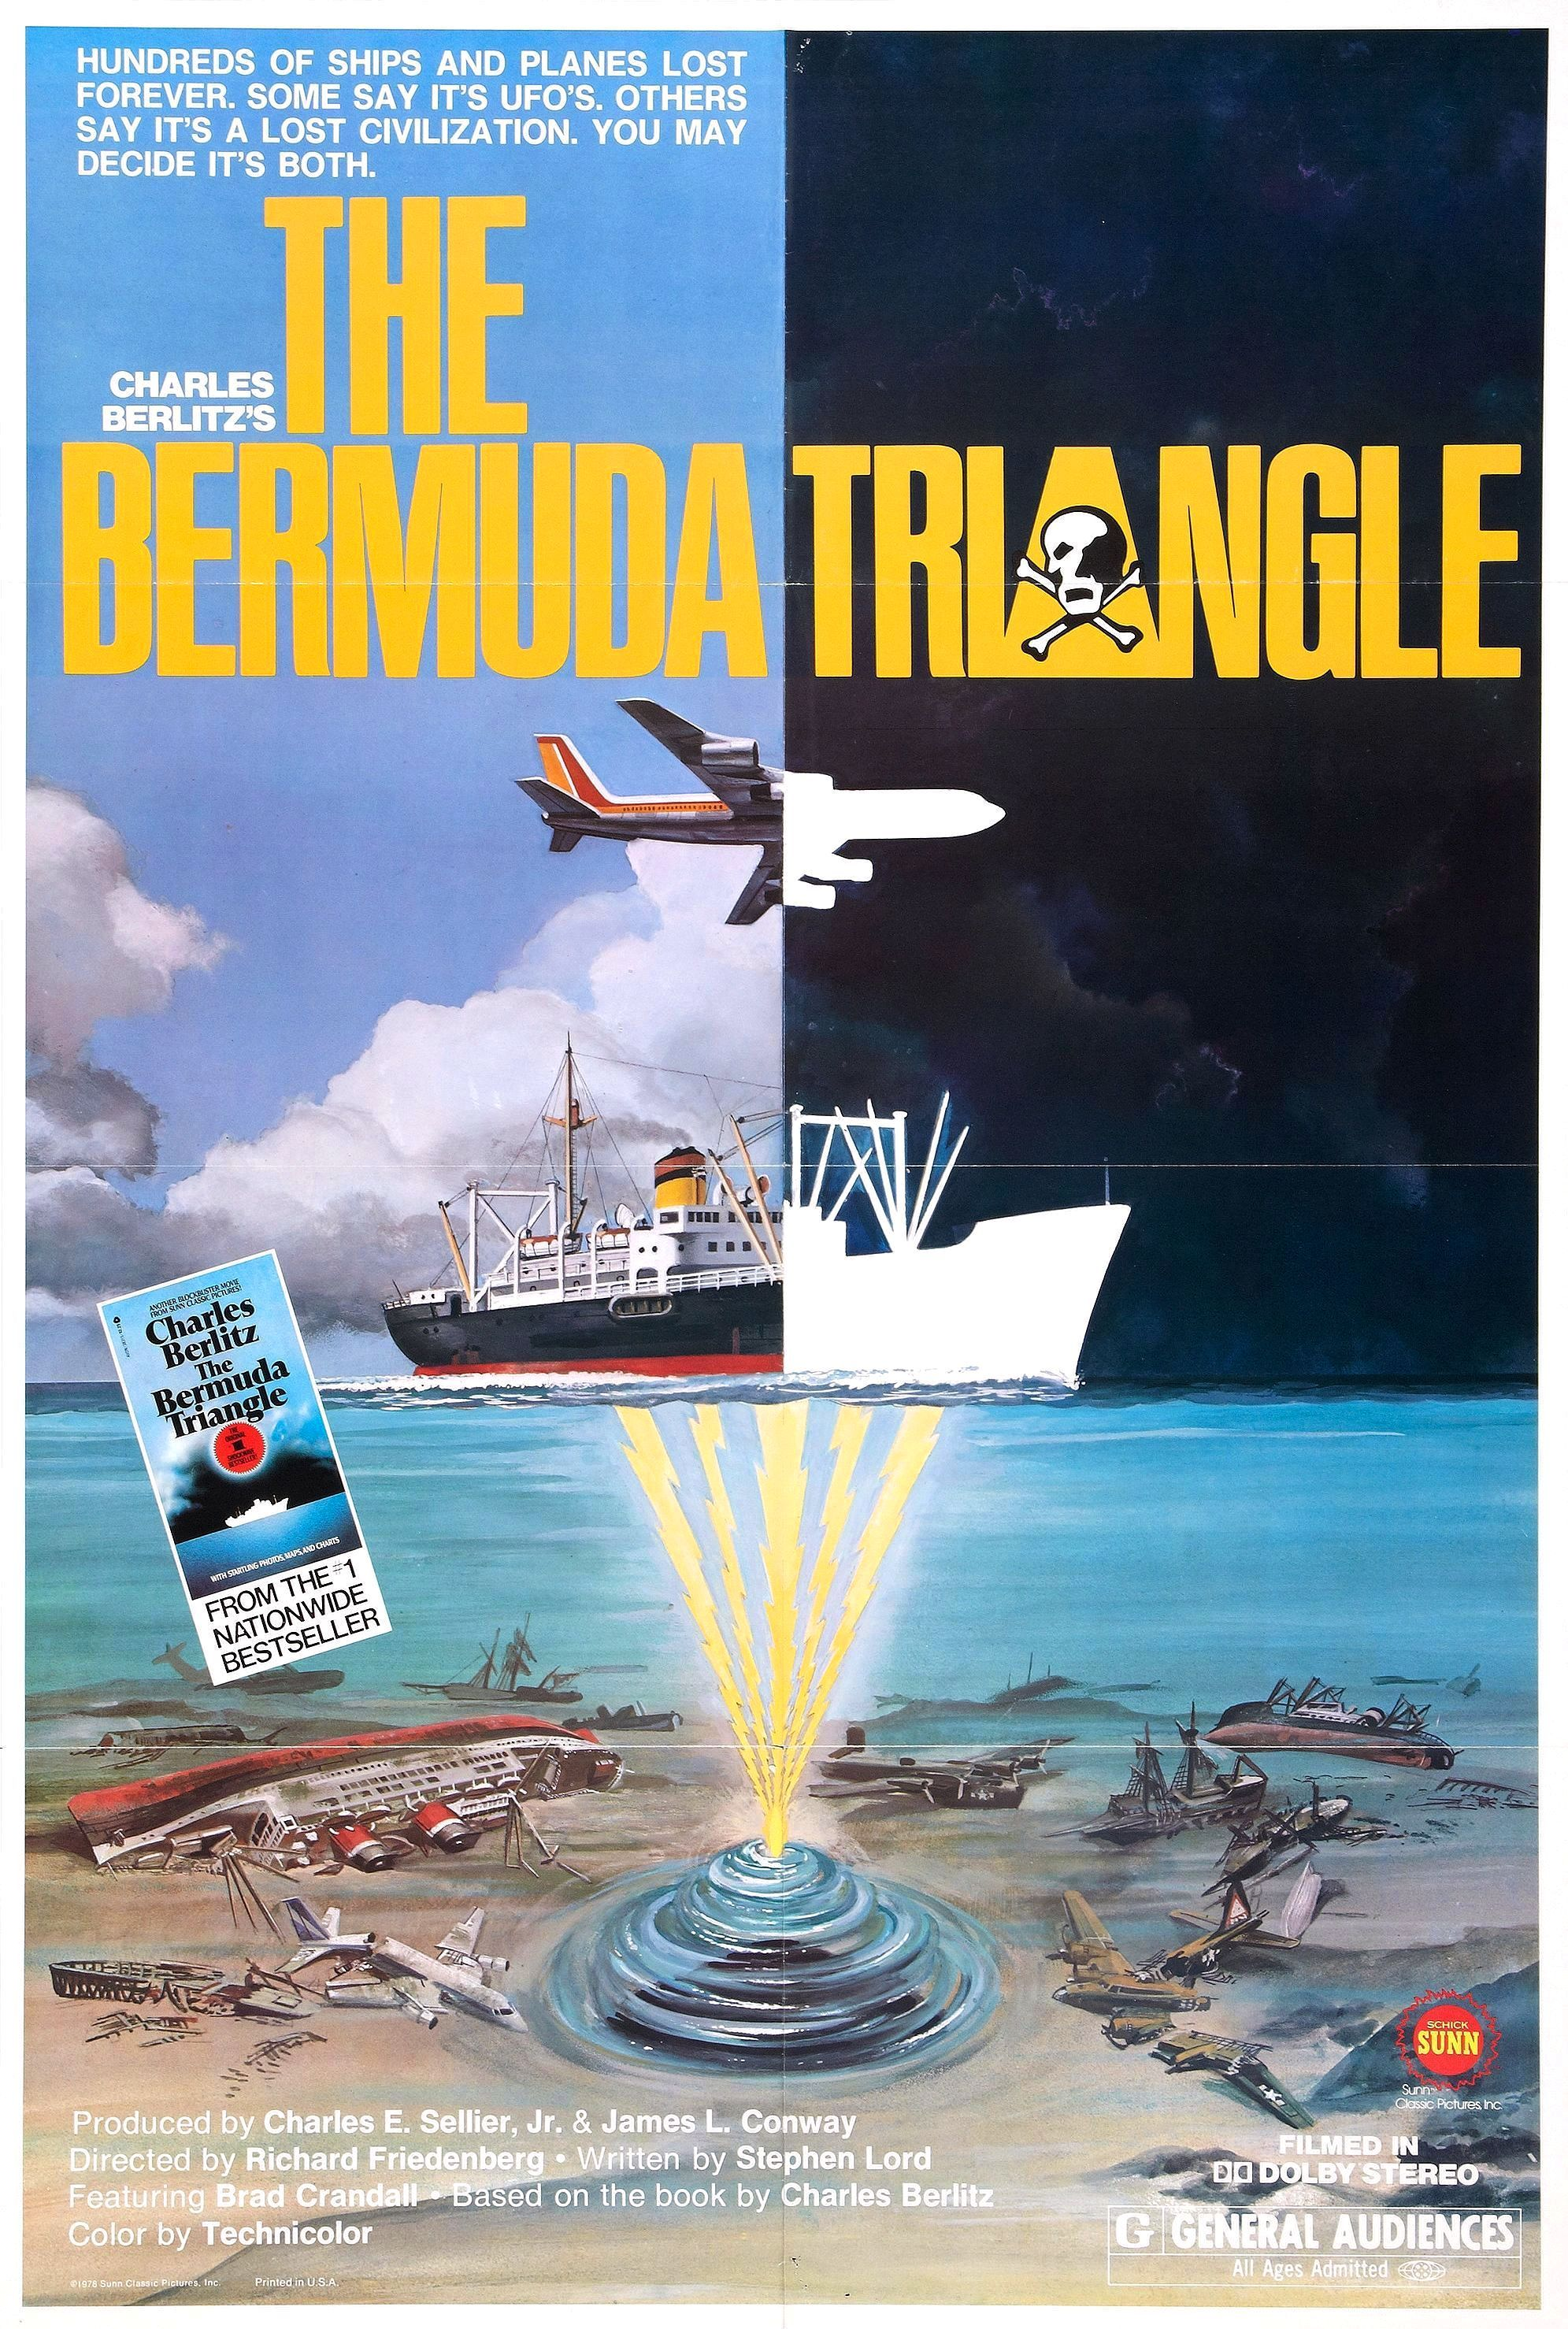 the bermuda triangle 1979 movie posters bermudas the bermuda triangle 1979